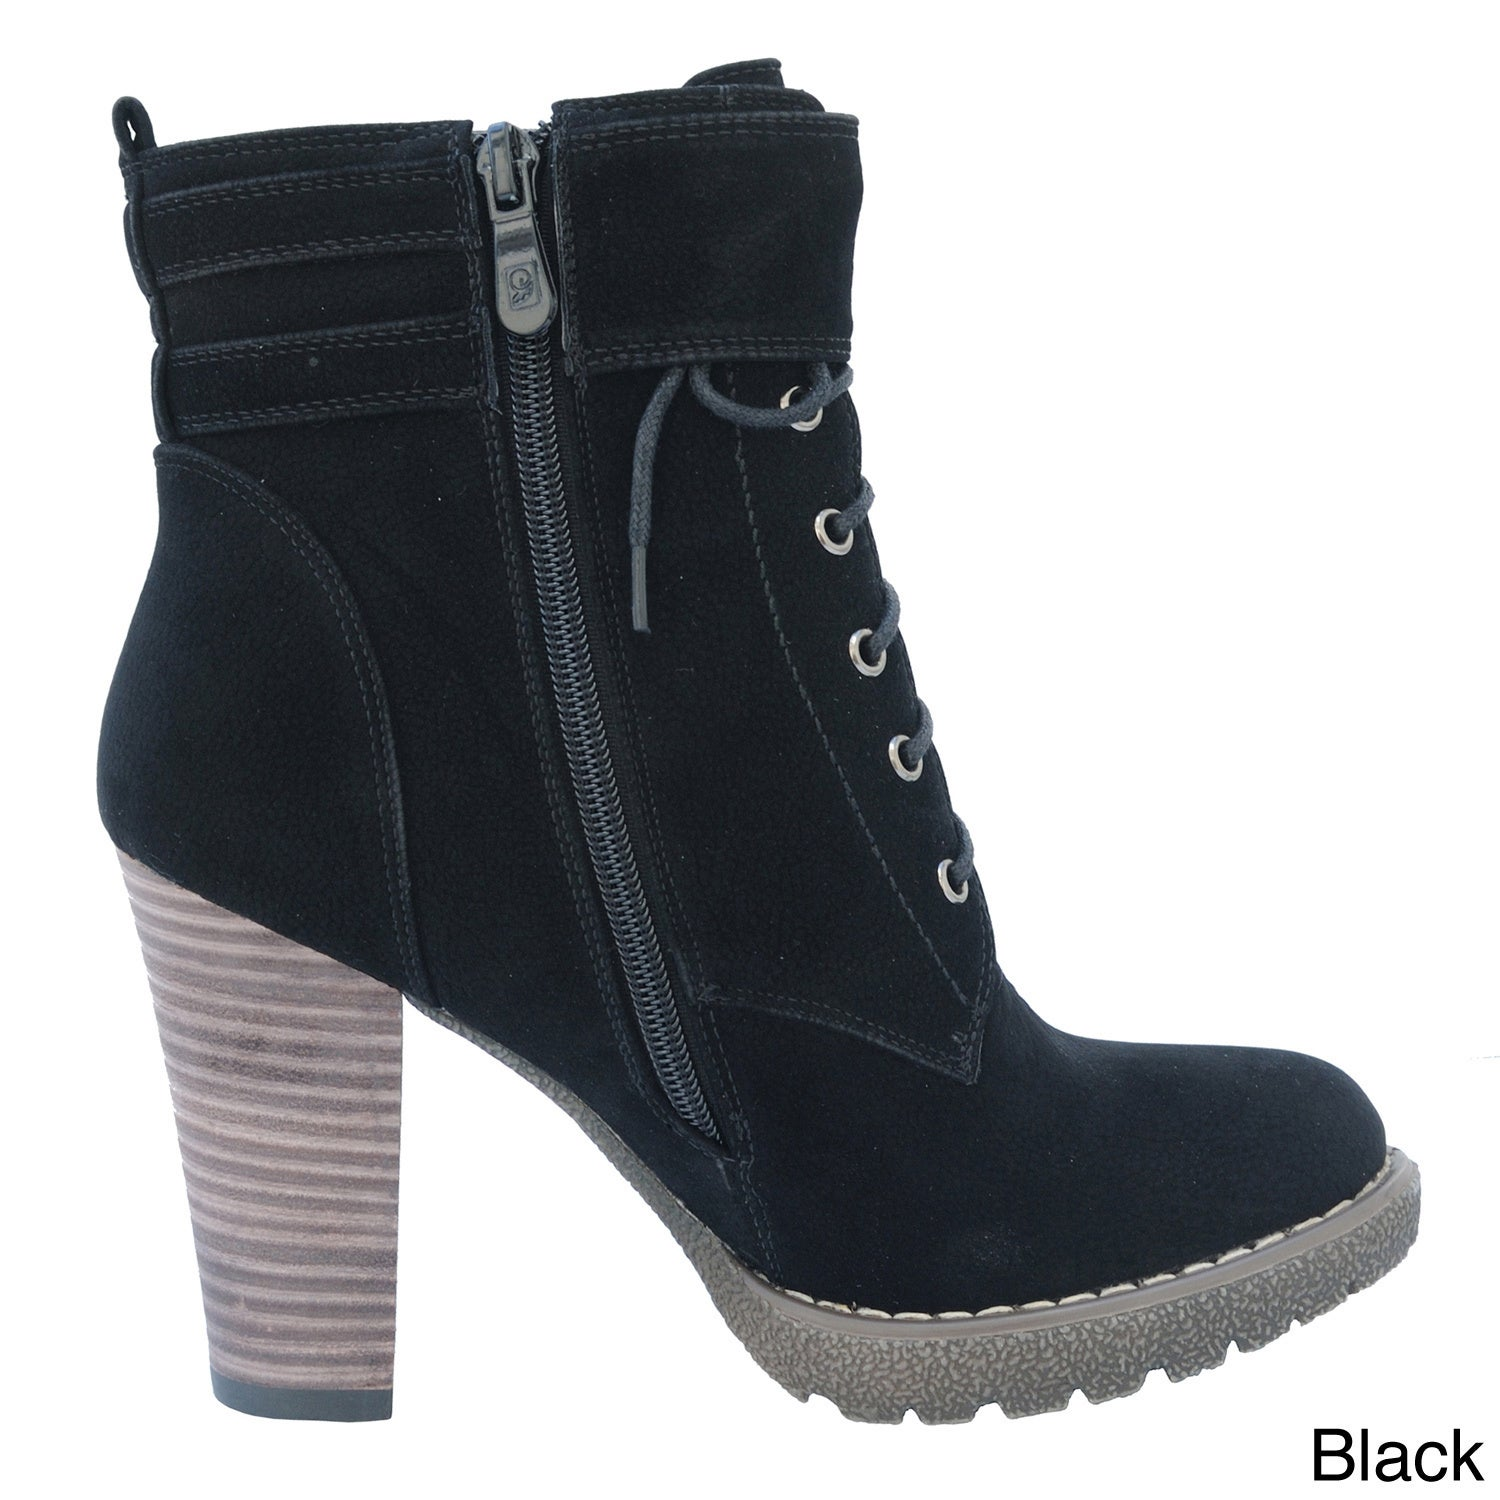 DimeCity Women's 'Breve' Stacked Heel Lace-up Ankle Boots...